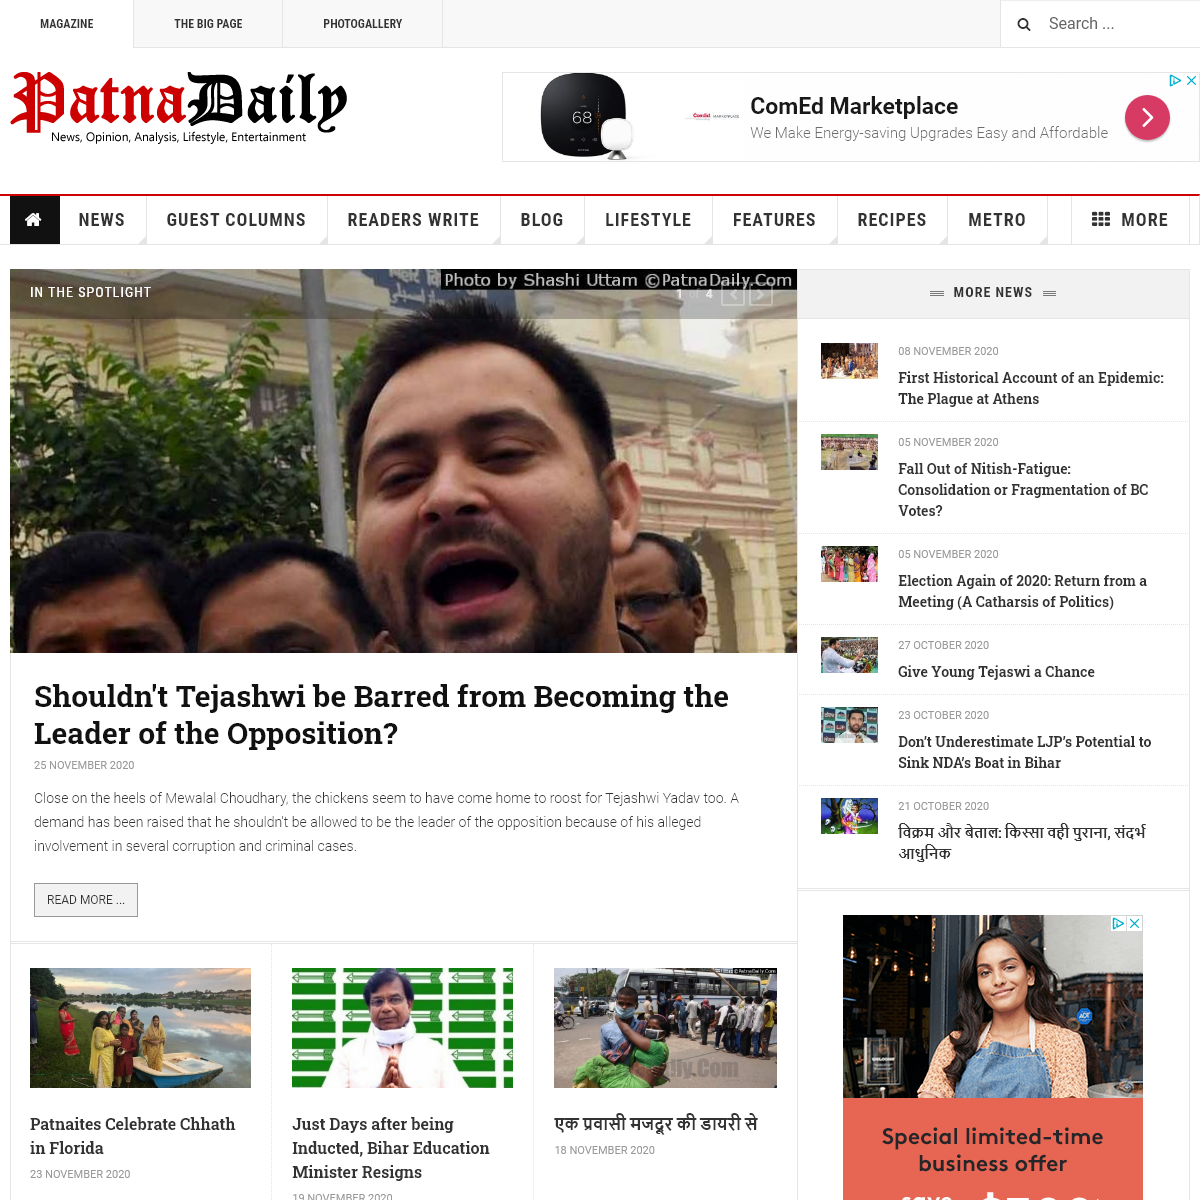 PatnaDaily - The Most Trusted Name for News and Views from Patna, Bihar. - PatnaDaily